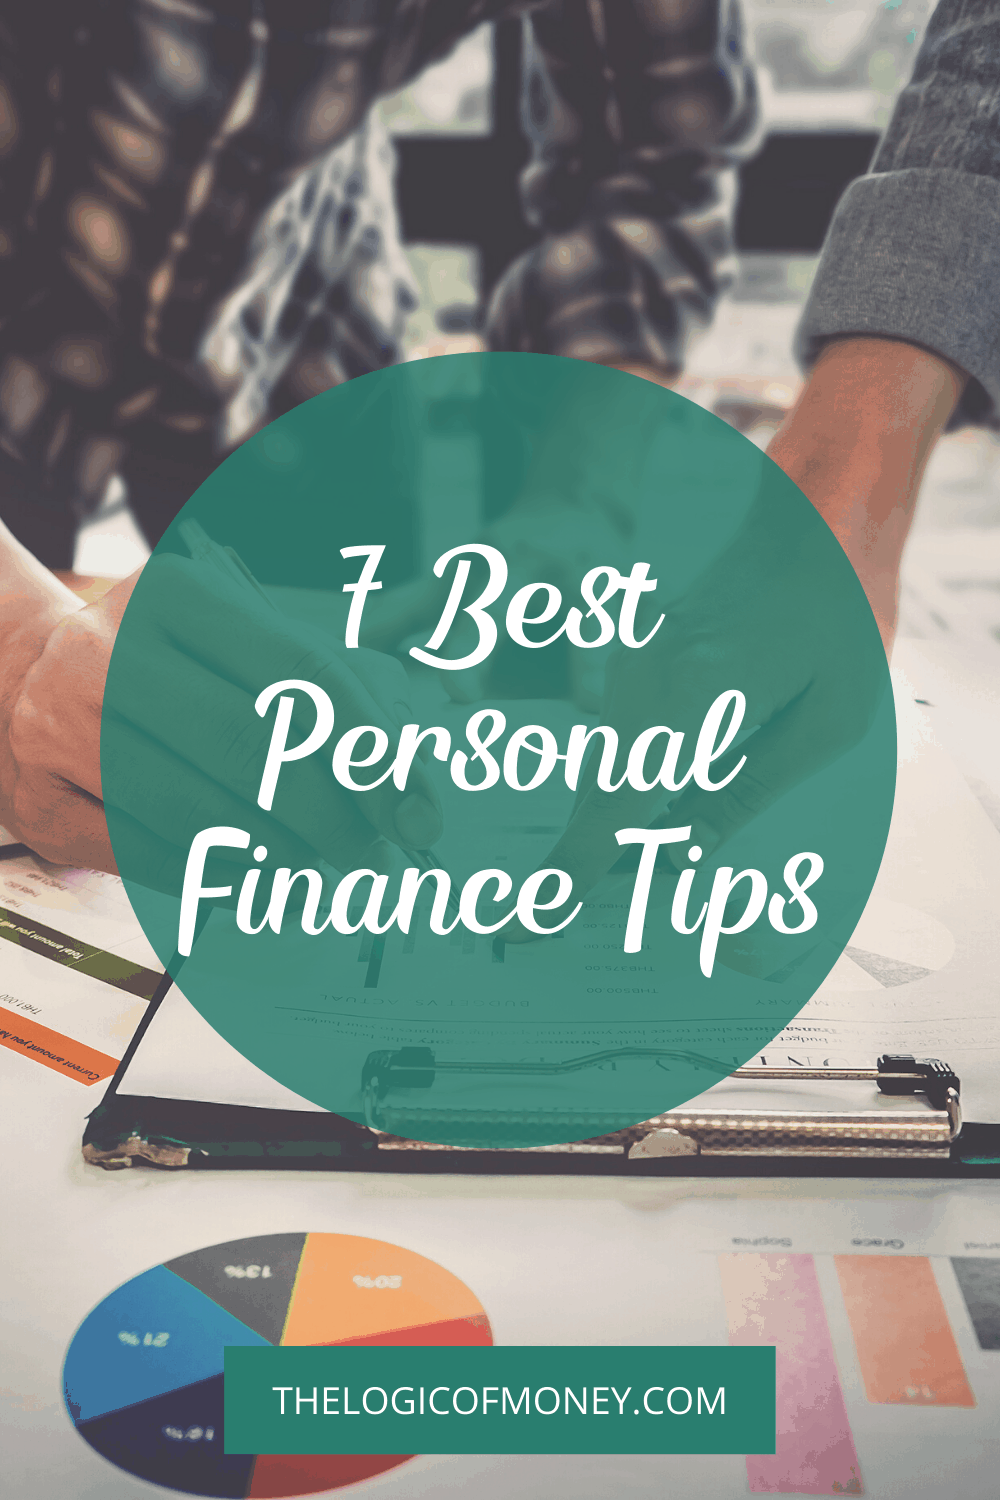 7 Best Personal Finance Tips